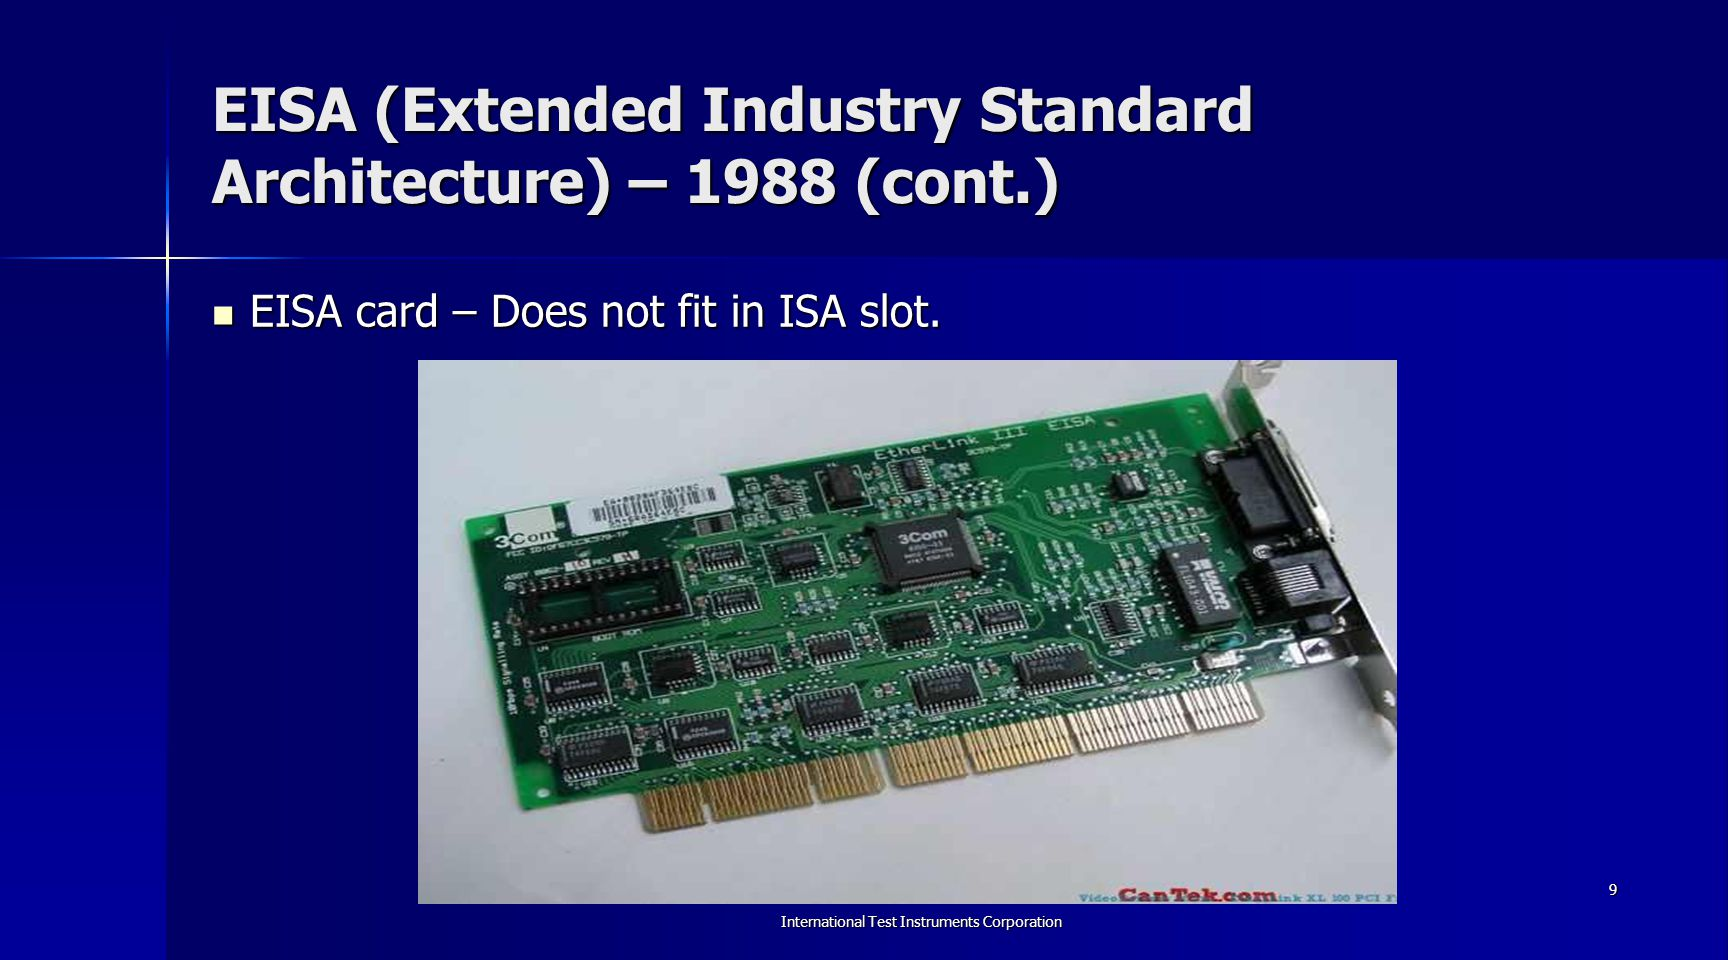 EISA (Extended Industry Standard Architecture) – 1988 (cont.)